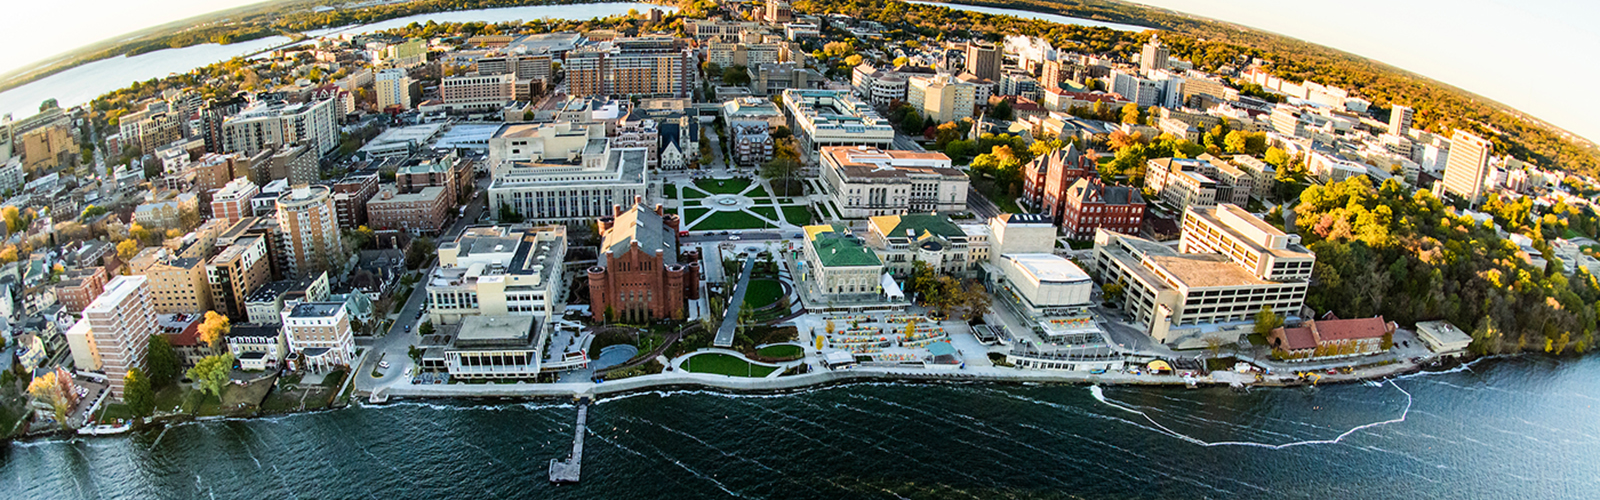 An aerial view of campus with Lake Mendota in the foreground